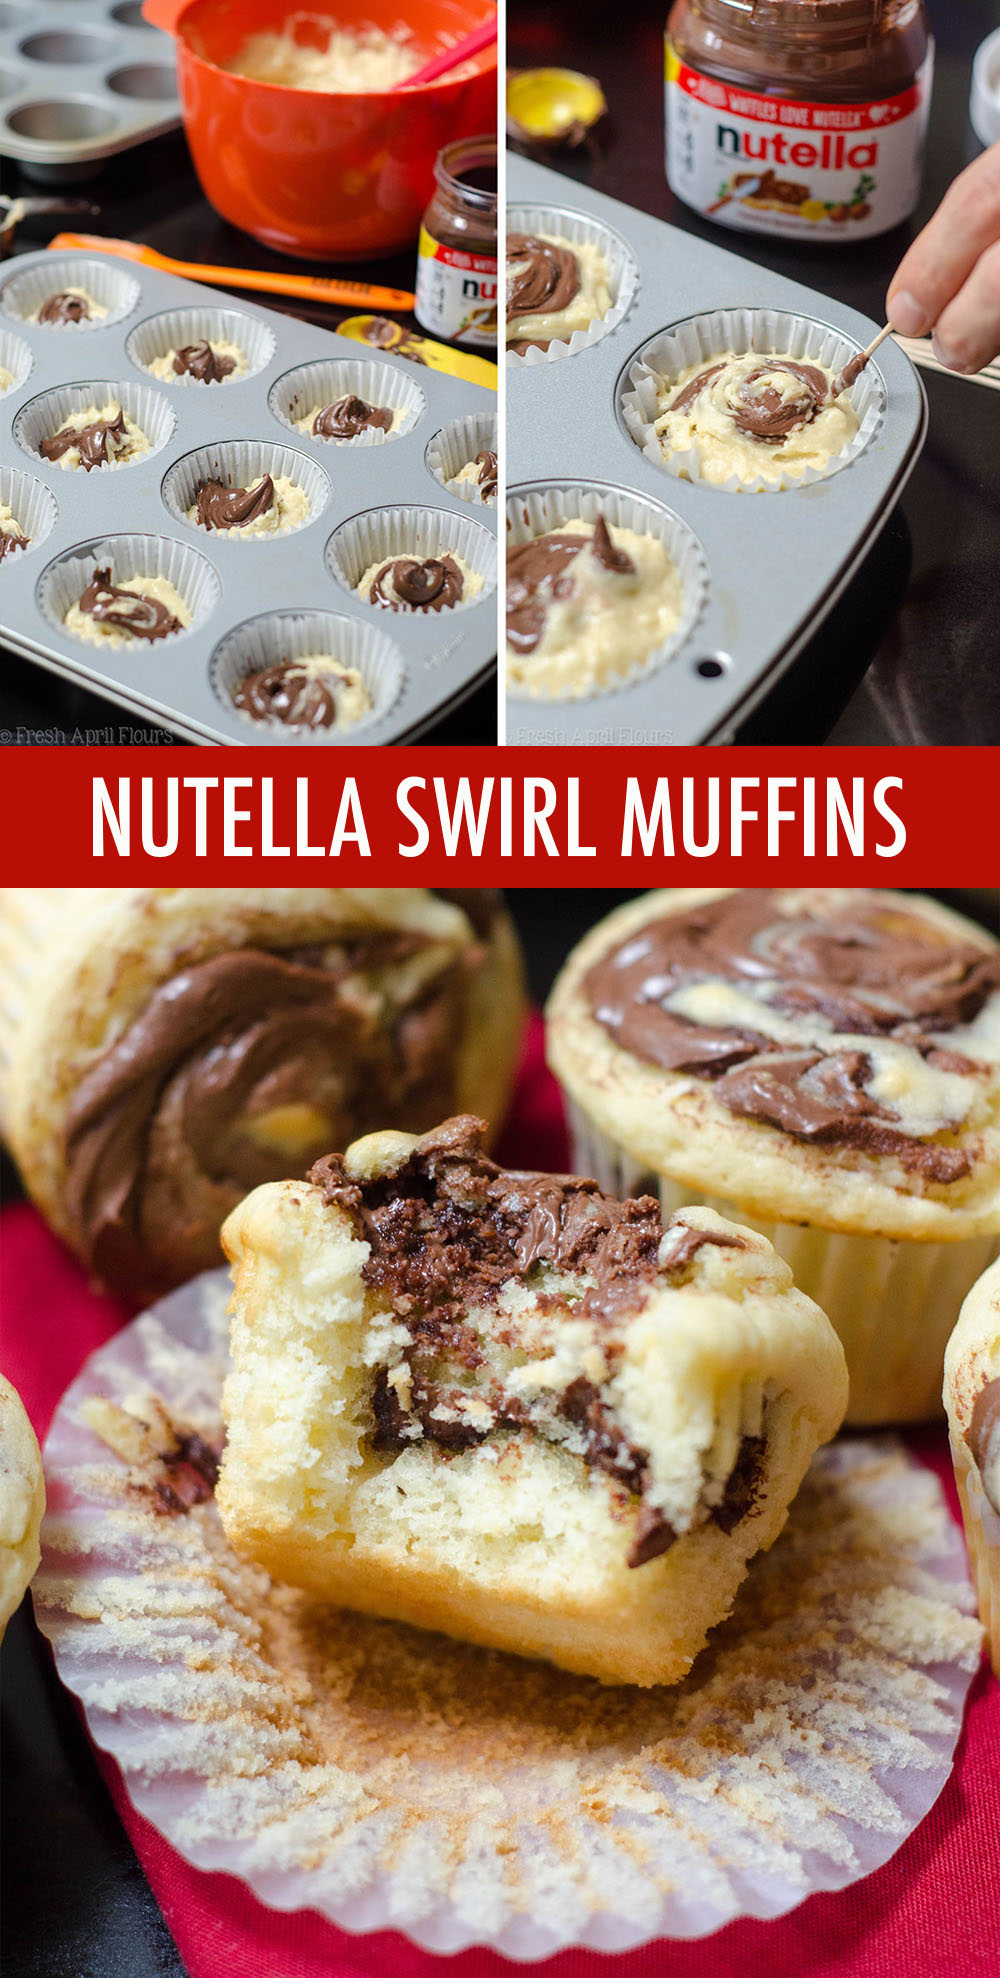 Basic buttermilk muffins get a jazzy upgrade with Nutella swirled into every bite.